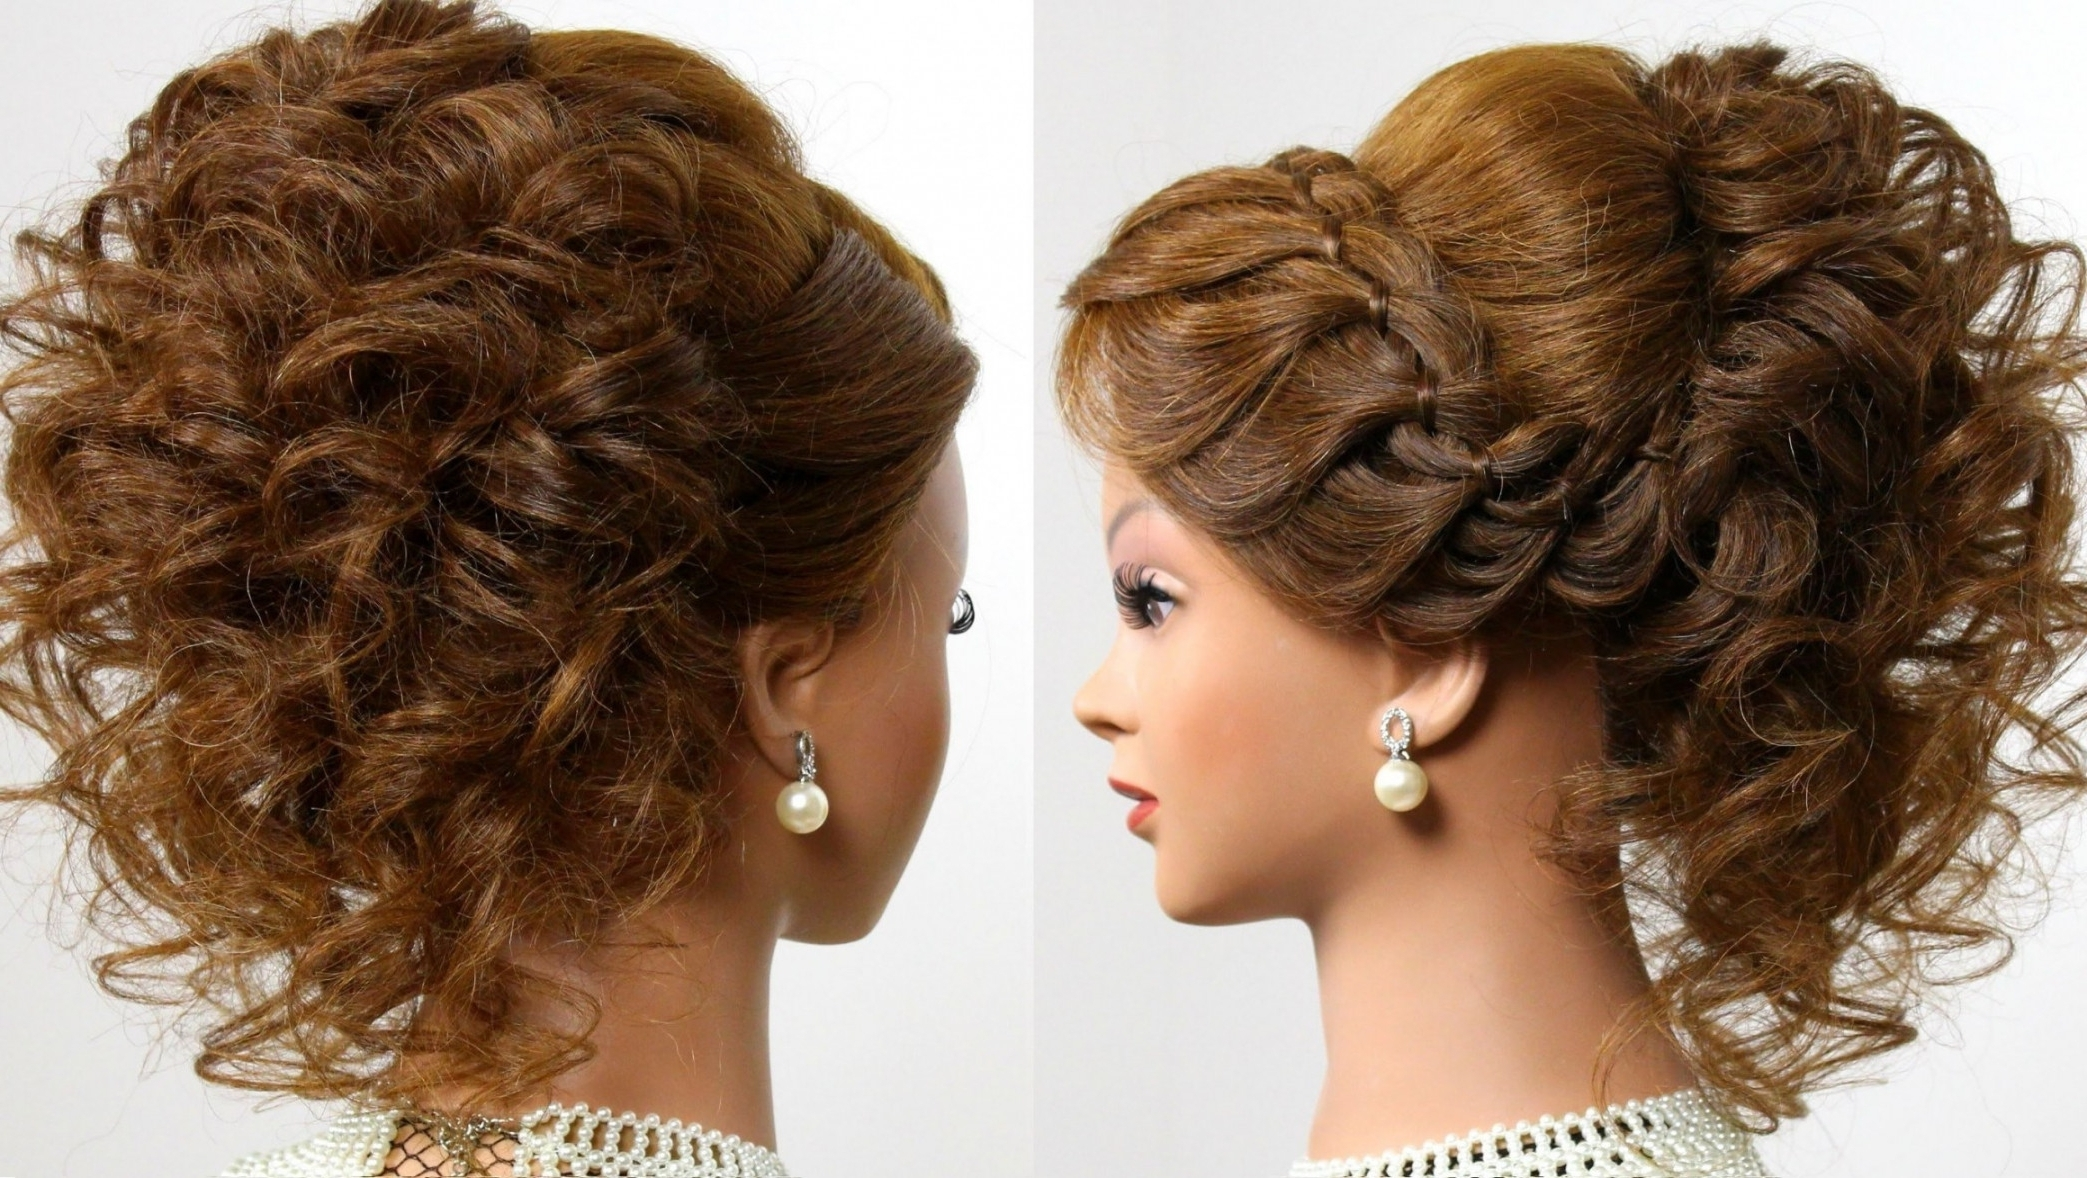 Hairstyles: Wedding Hairstyles Updos | Curly Hair Updos | Updo Inside Updo Hairstyles For Weddings Long Hair (View 12 of 15)